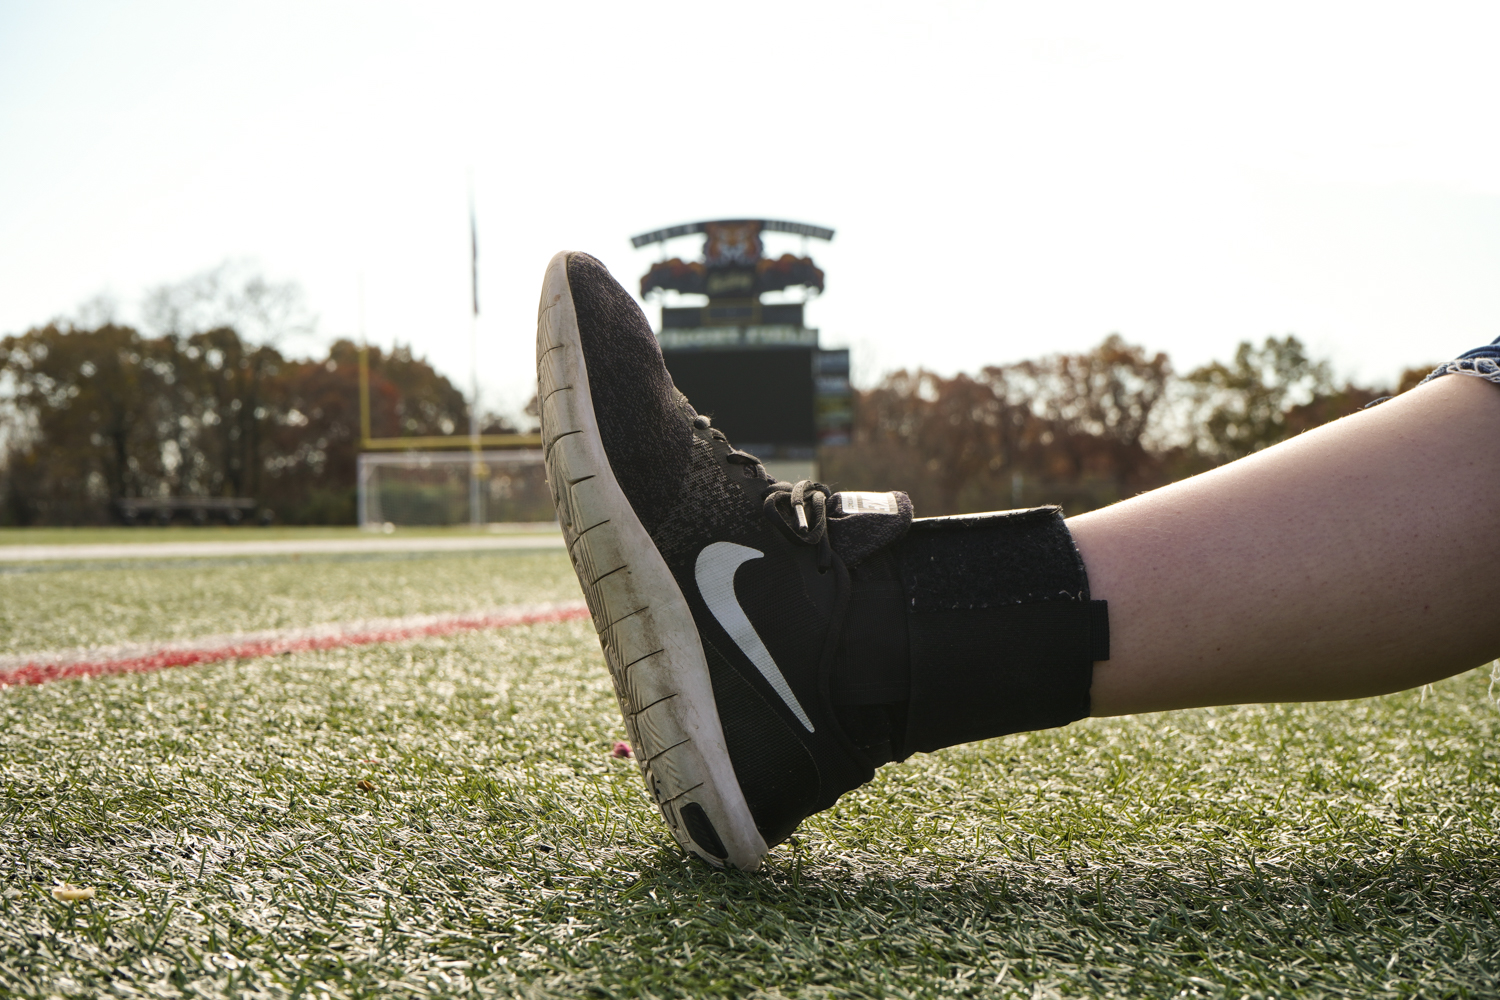 An injury that is not properly treated can cause lifelong pain and persistent issues for an athlete.